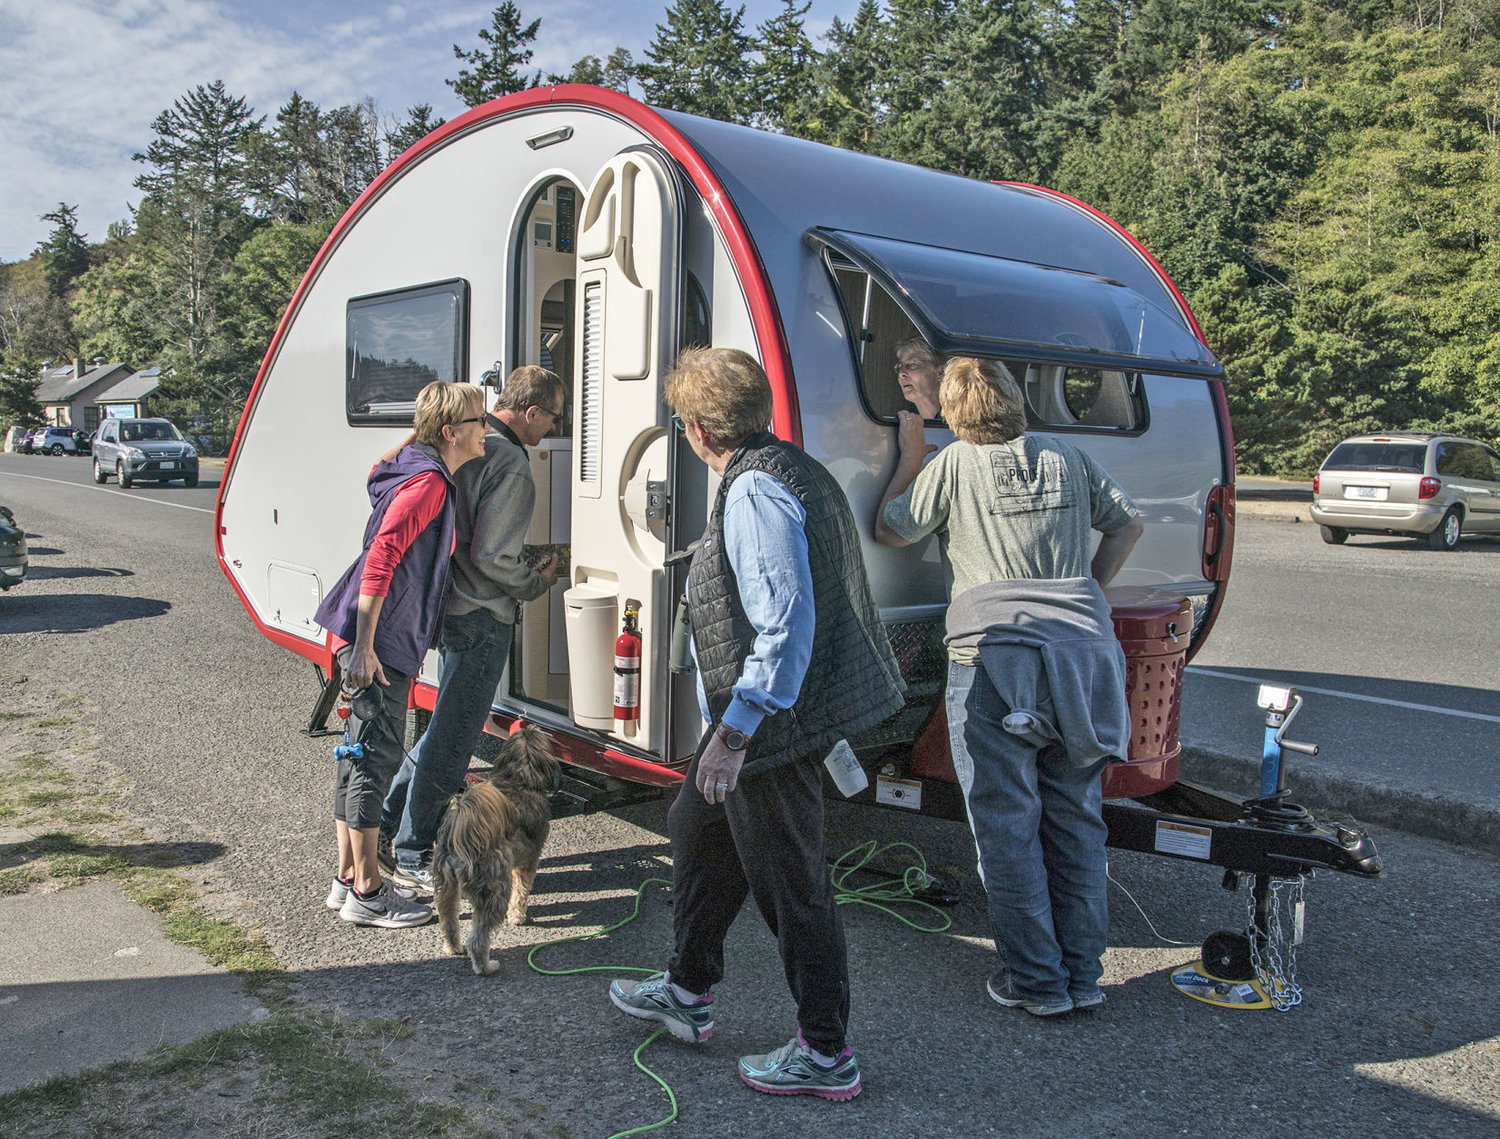 Teardrop campers: The comforts of home, on wheels | Port Townsend Leader